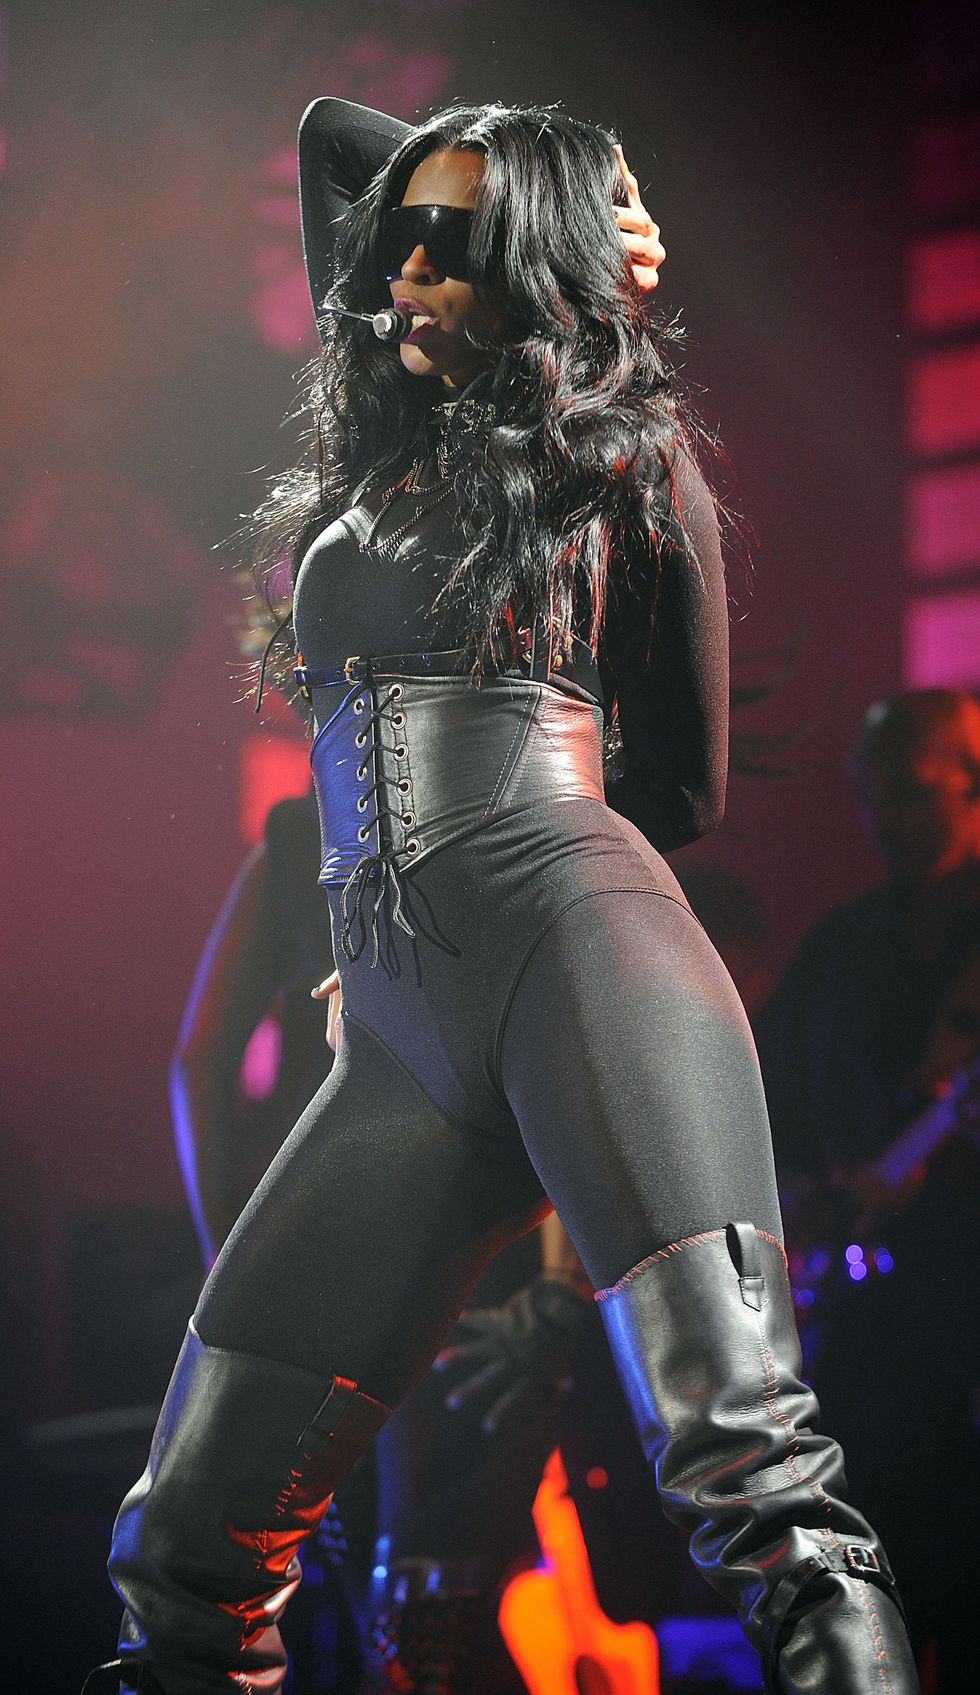 ciara-performs-at-the-justin-timberlake-and-friends-concert-01